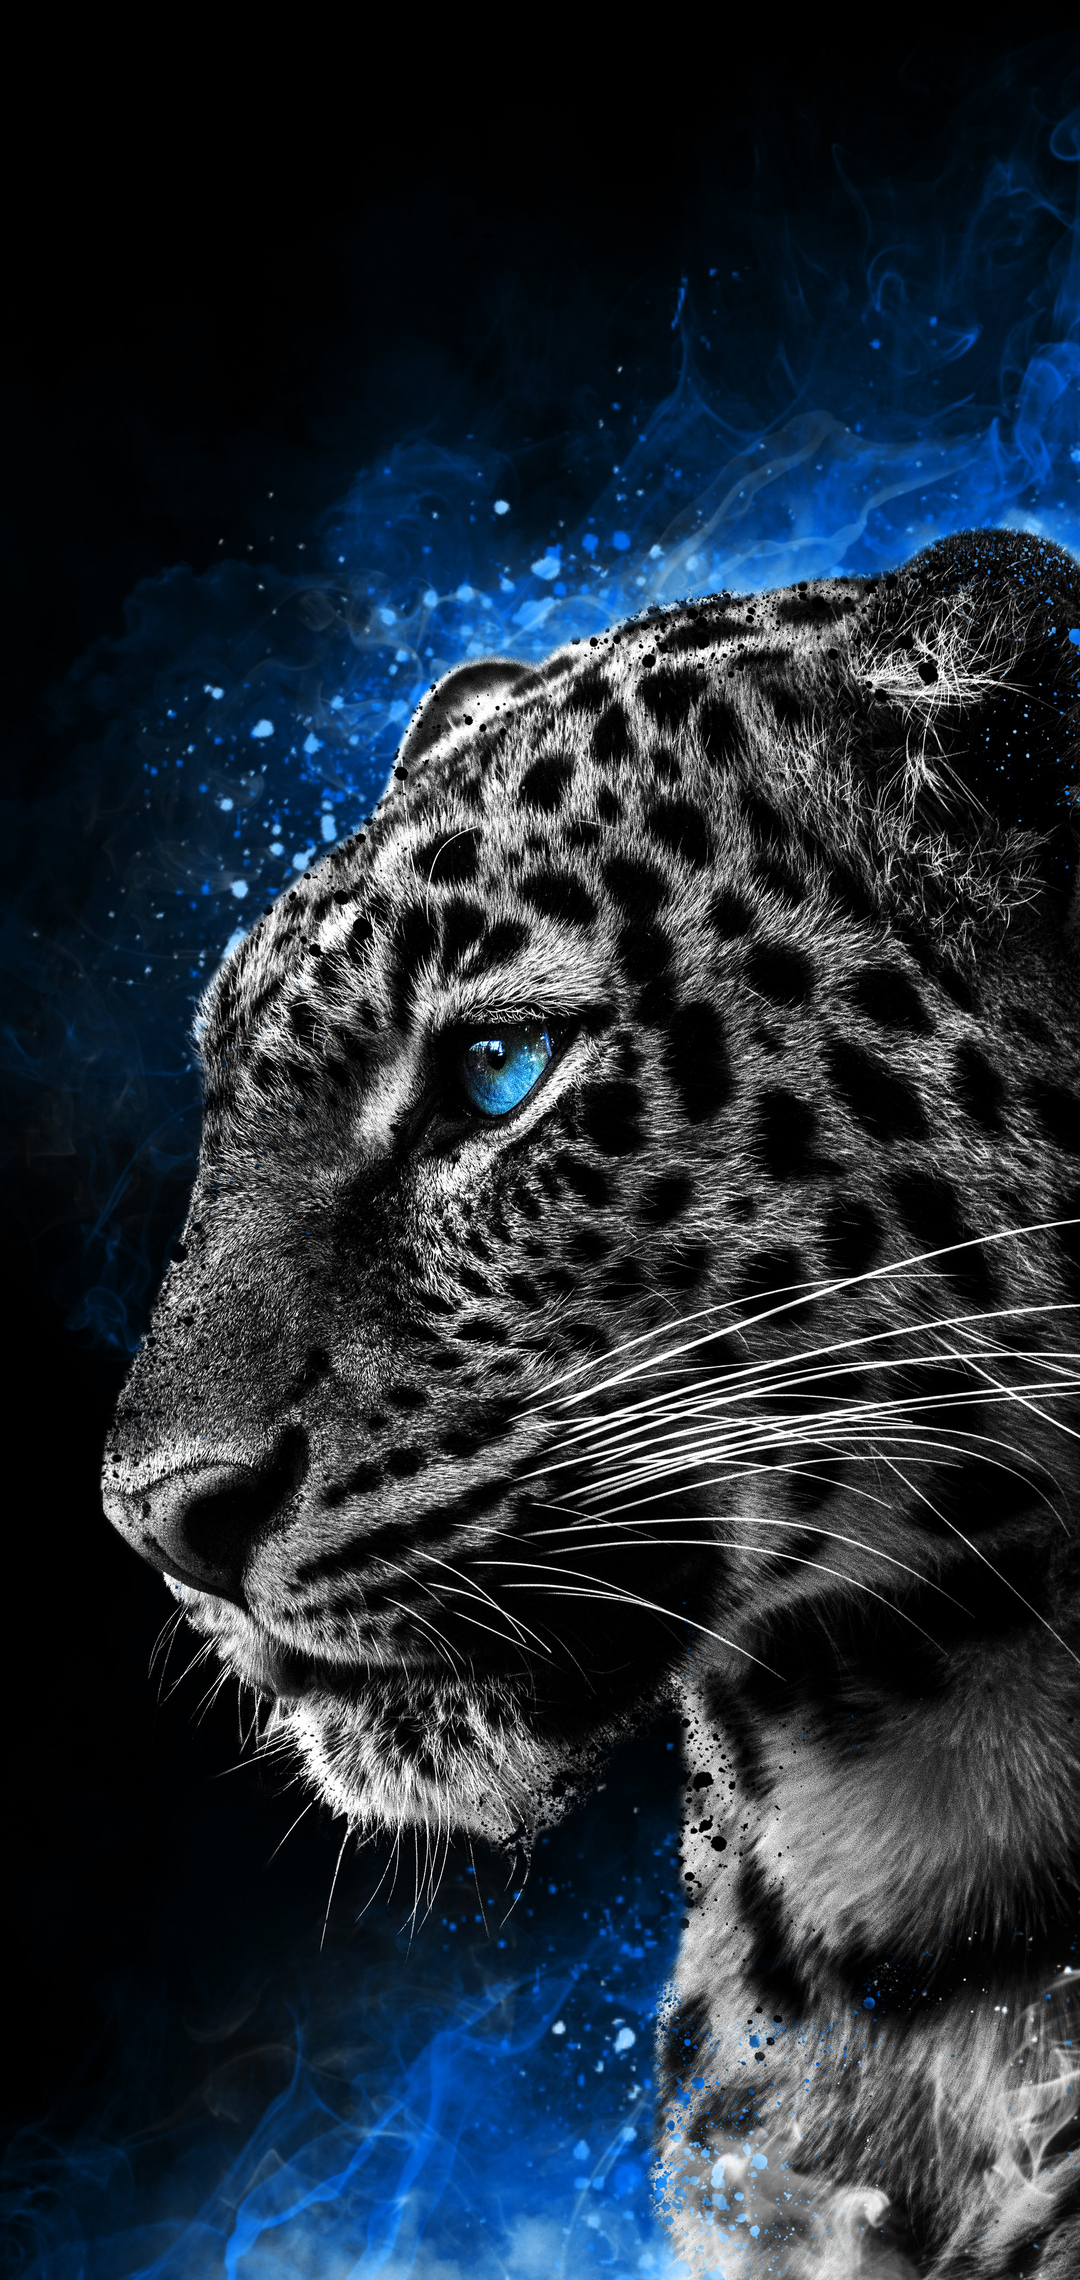 cheetah-galaxy-eyes-5m.jpg